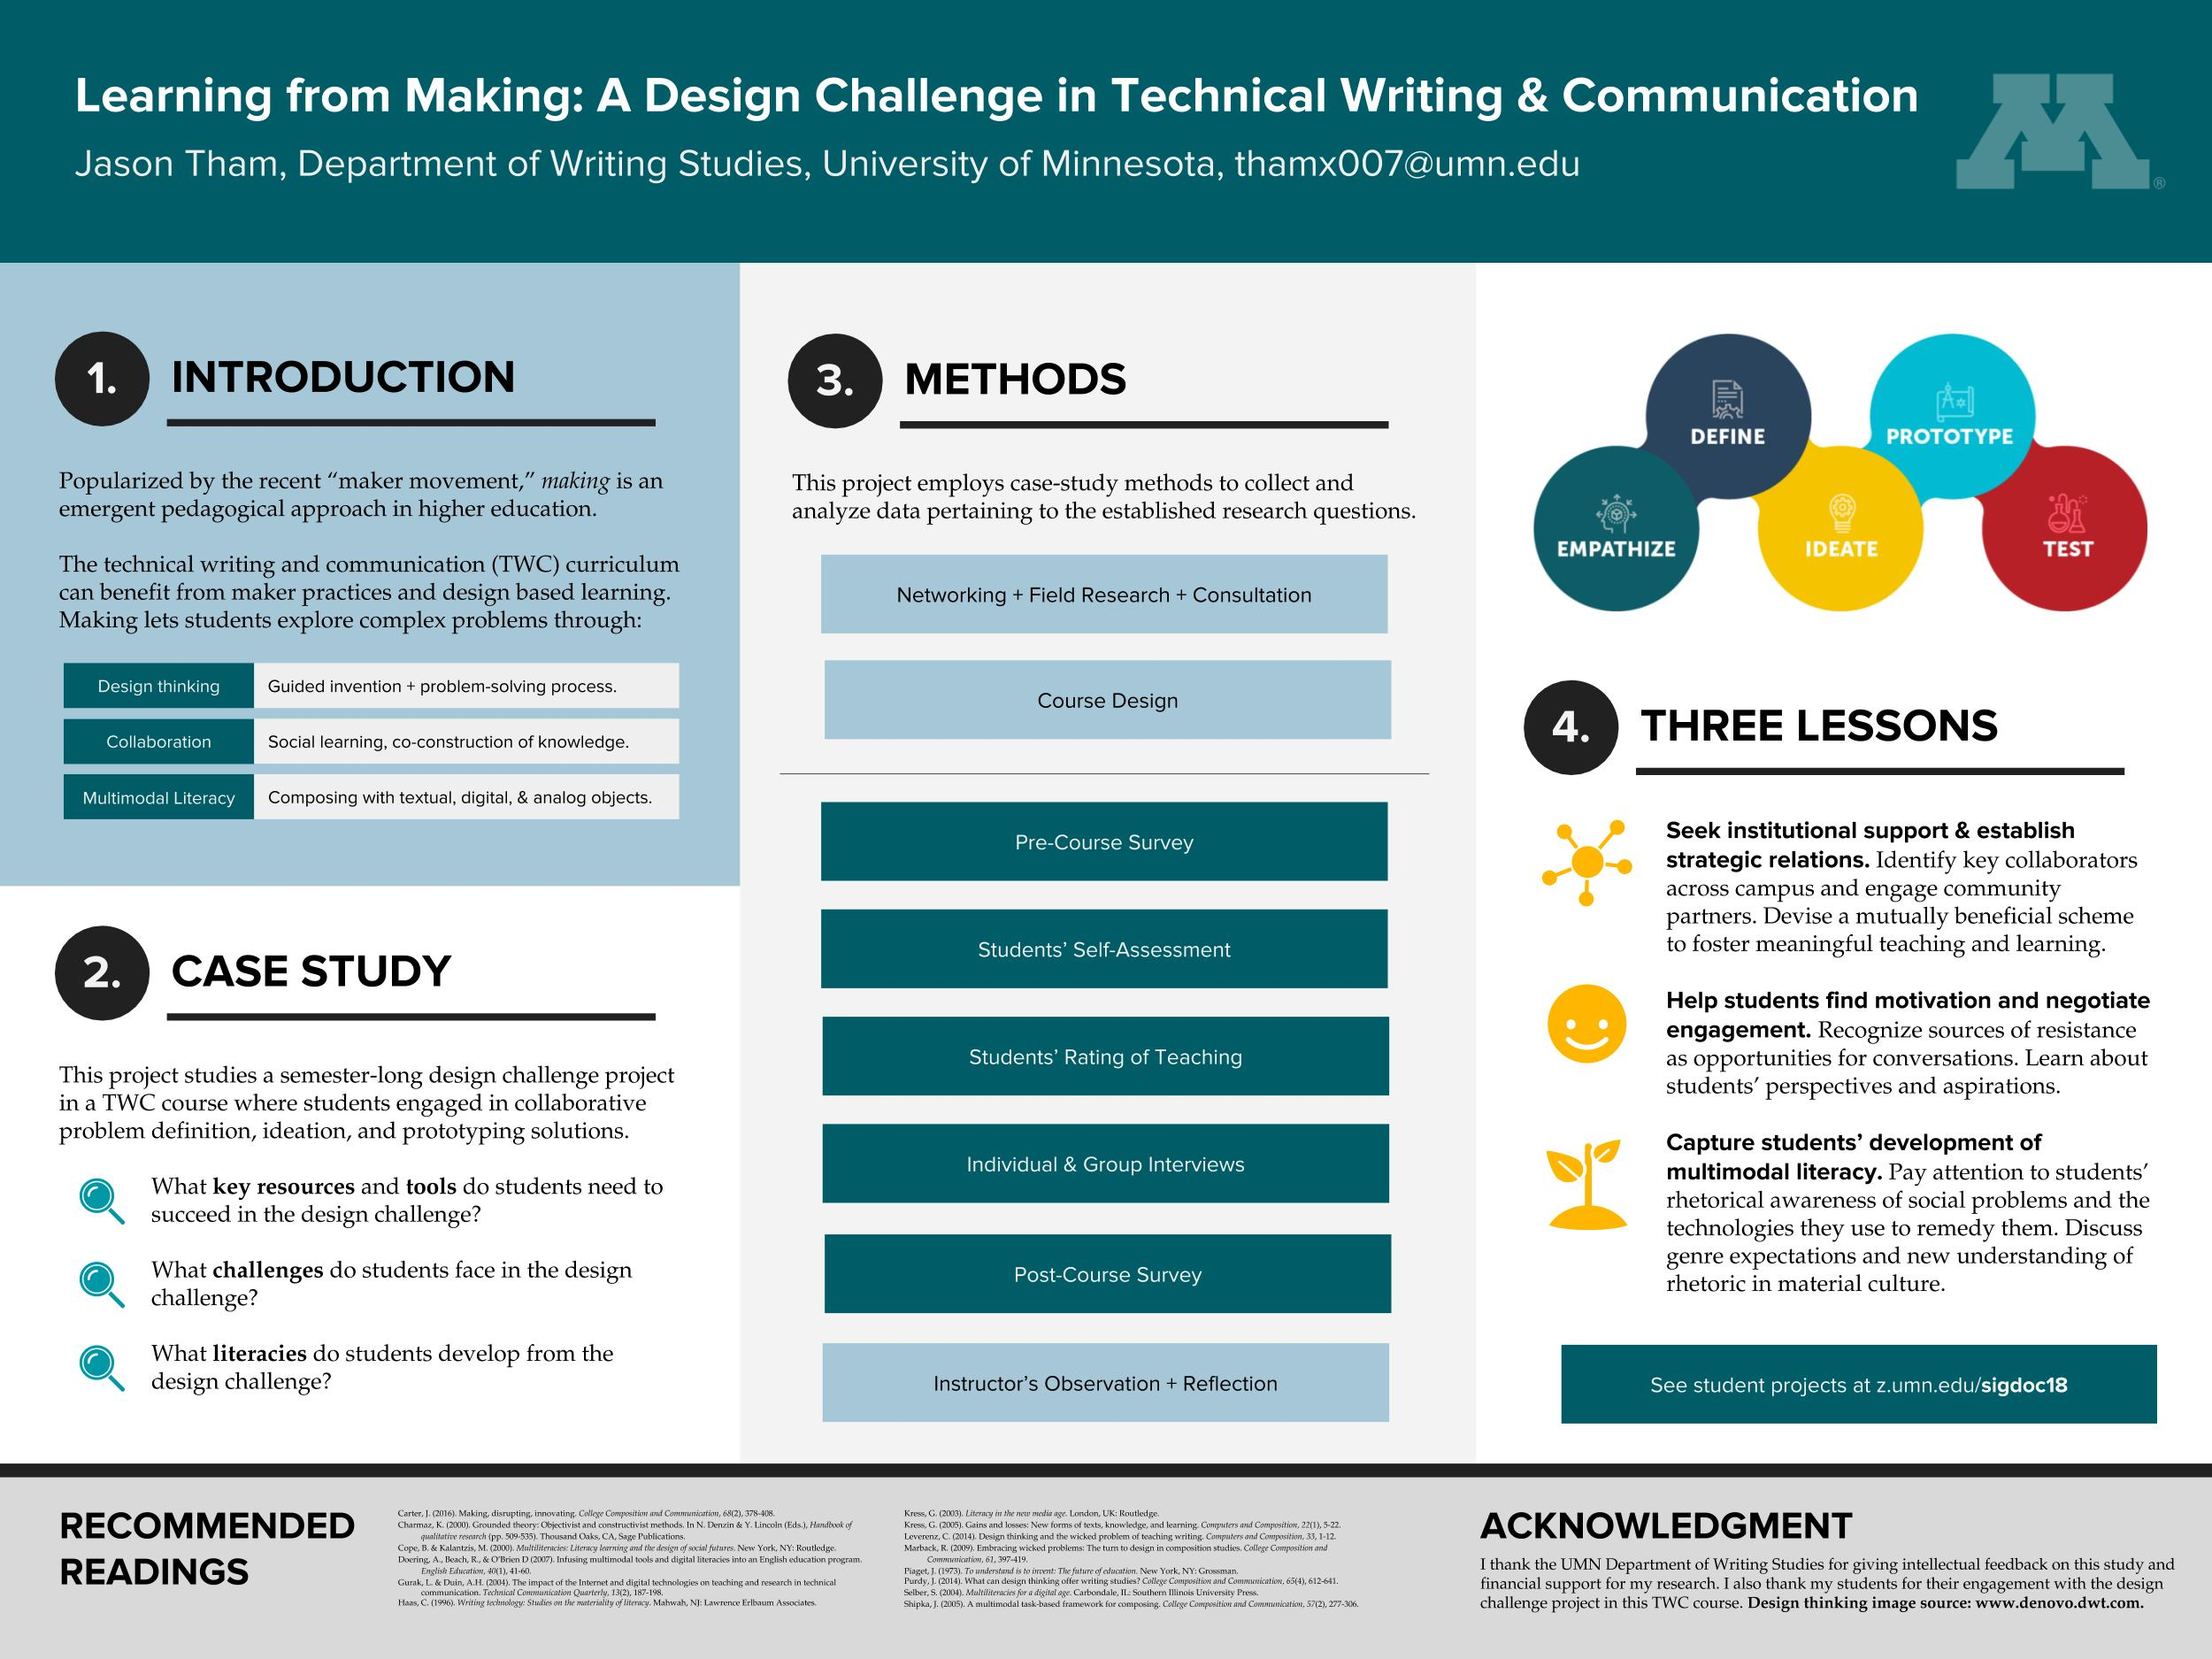 SIGDOC 2018 - Learning from Making [Poster]